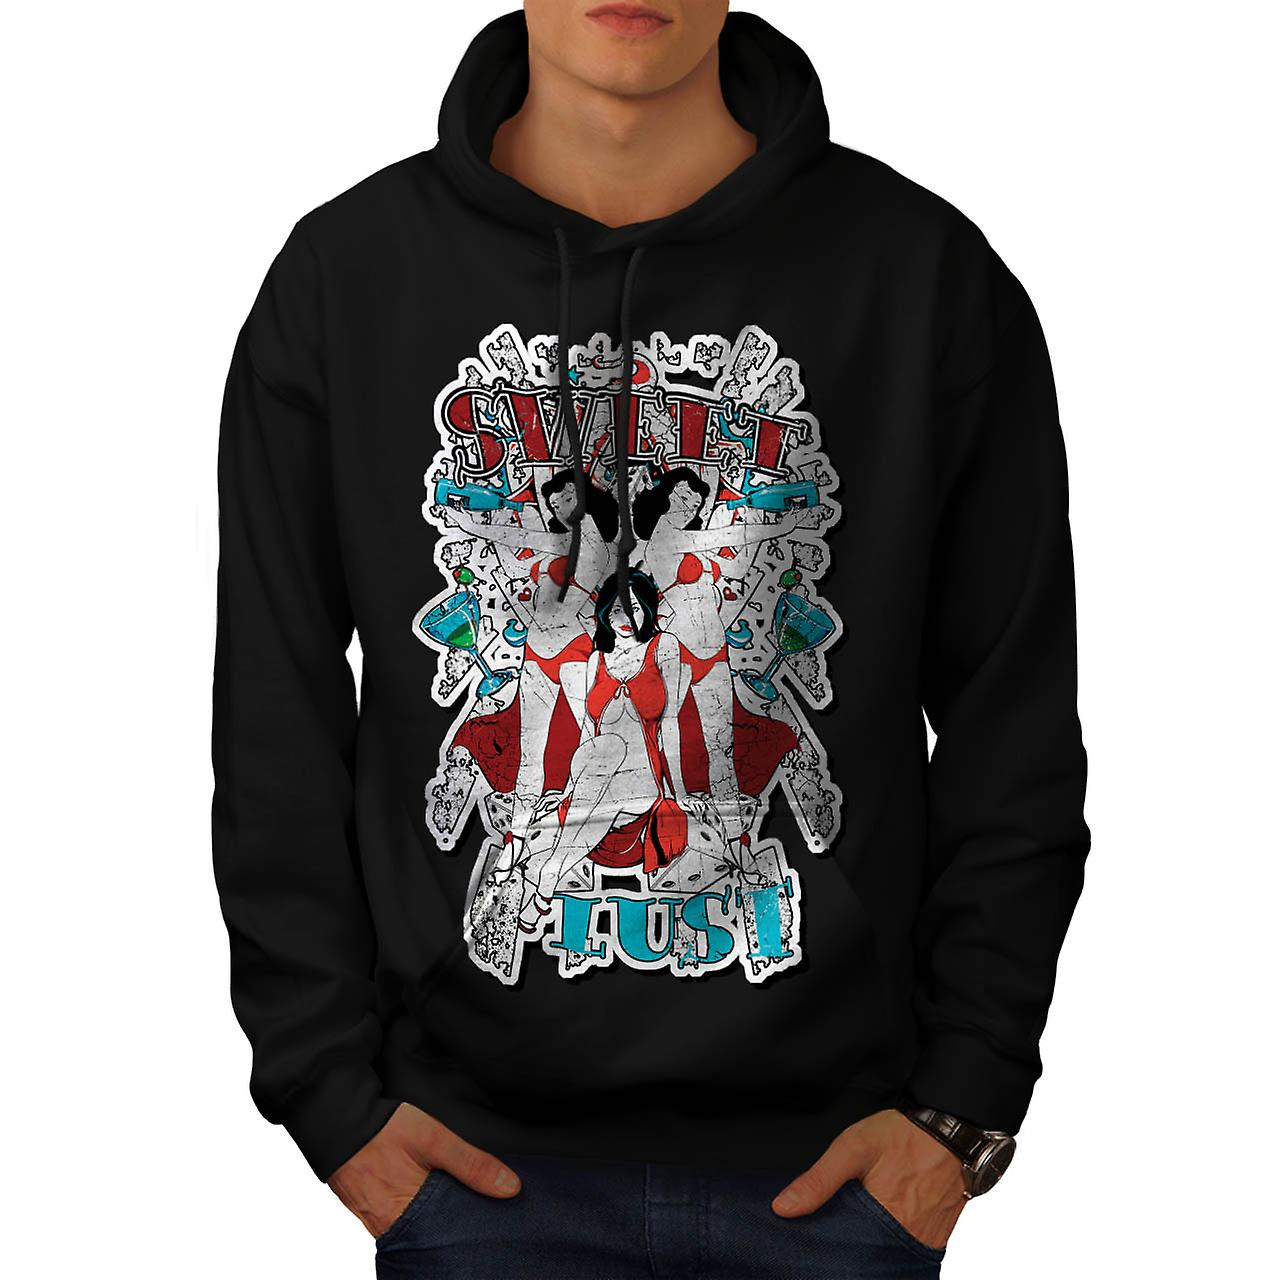 Sweet Lust Casino Bet Seduction Men Black Hoodie | Wellcoda